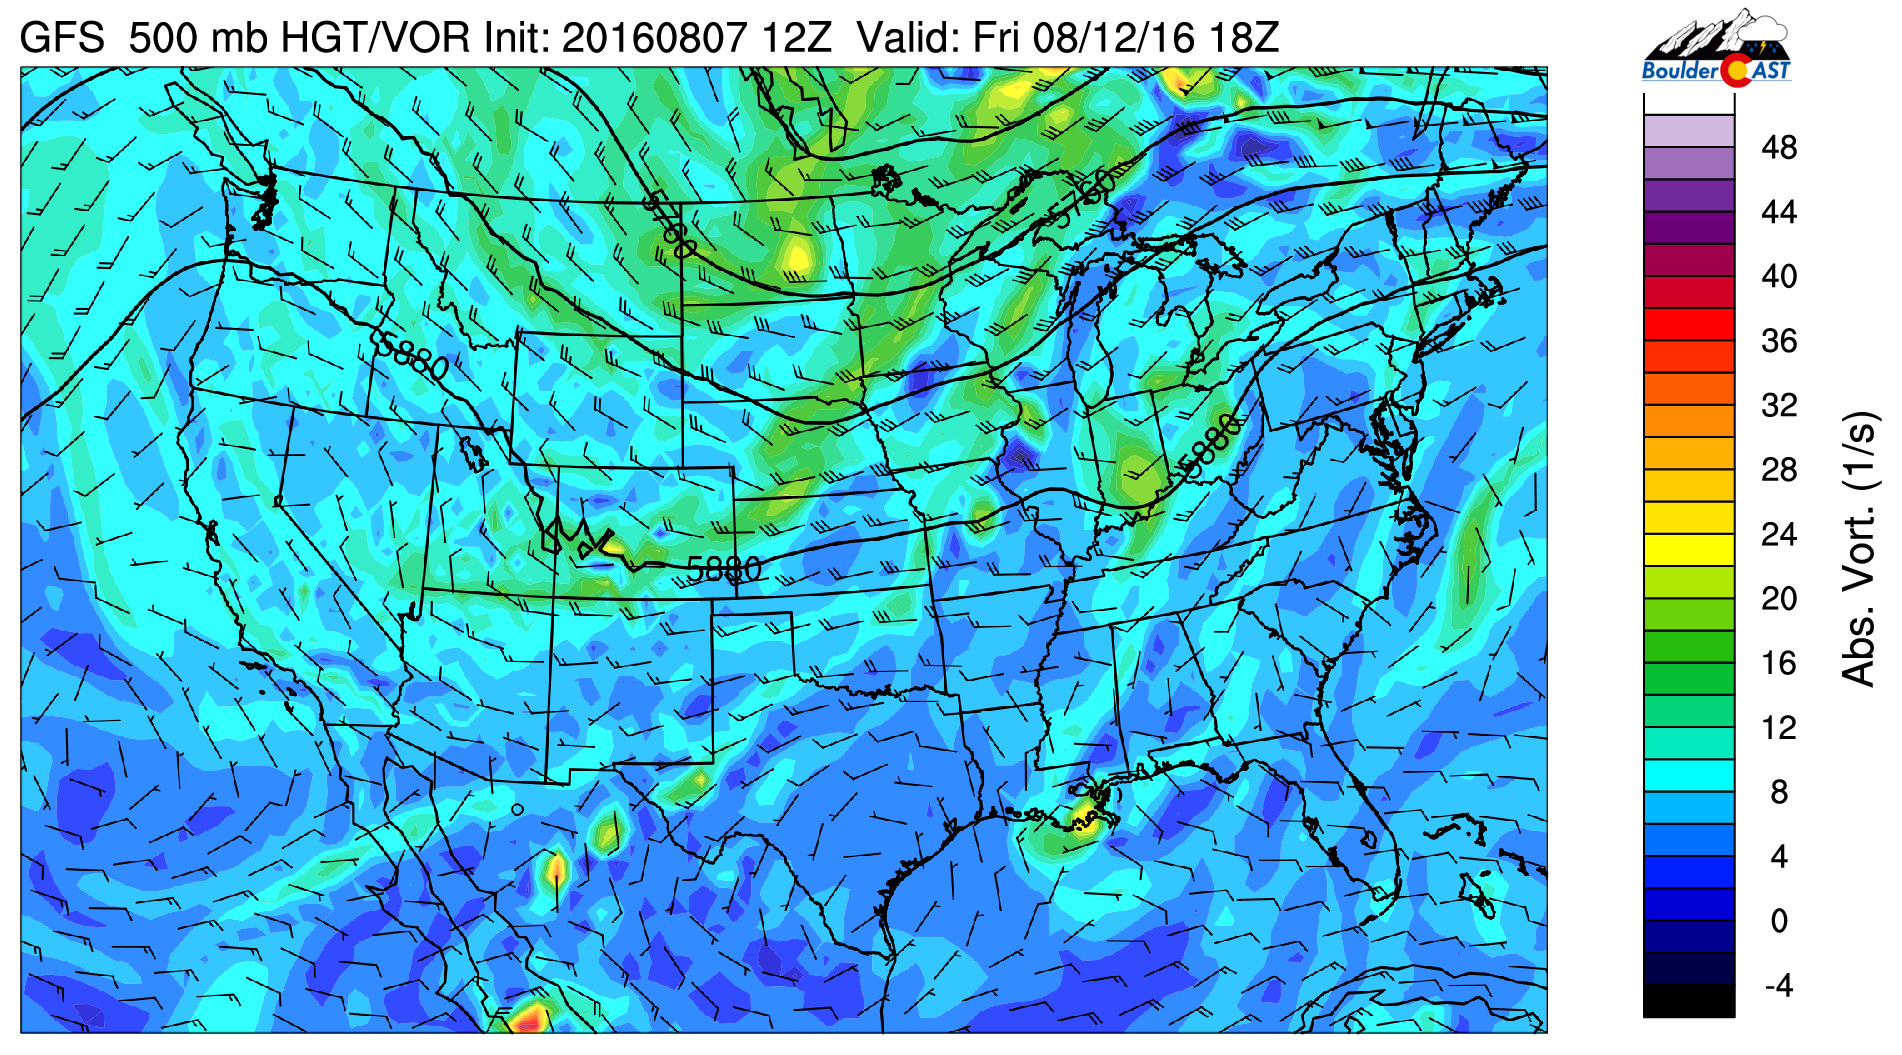 GFS 500 mb vorticity map for Friday, showing northwest flow in place